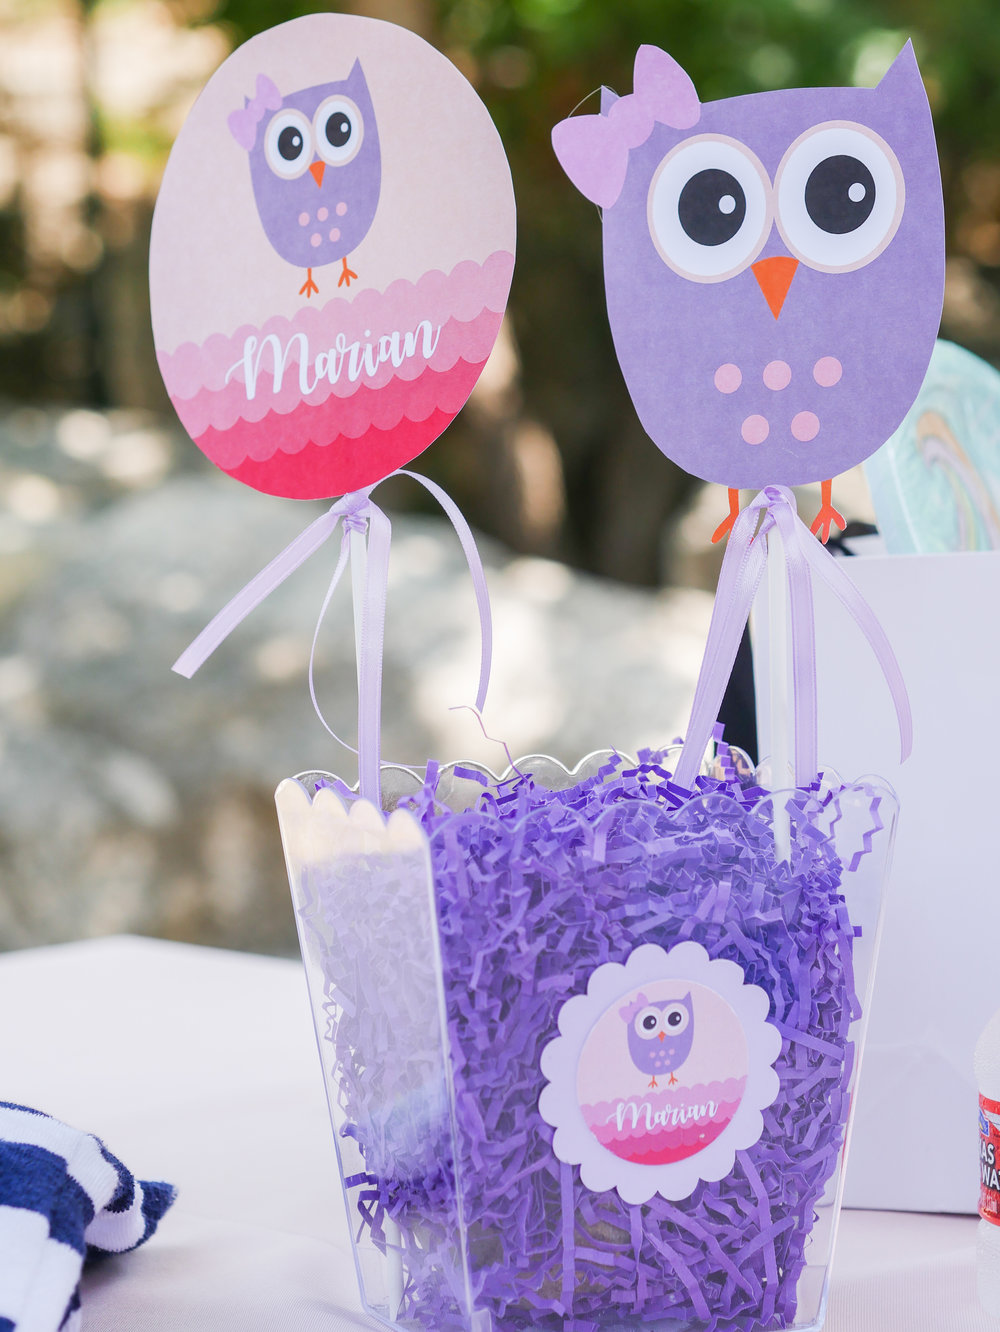 These Easy To Make Owl Party Centerpieces Will Add A Pop Of Color Your Tables